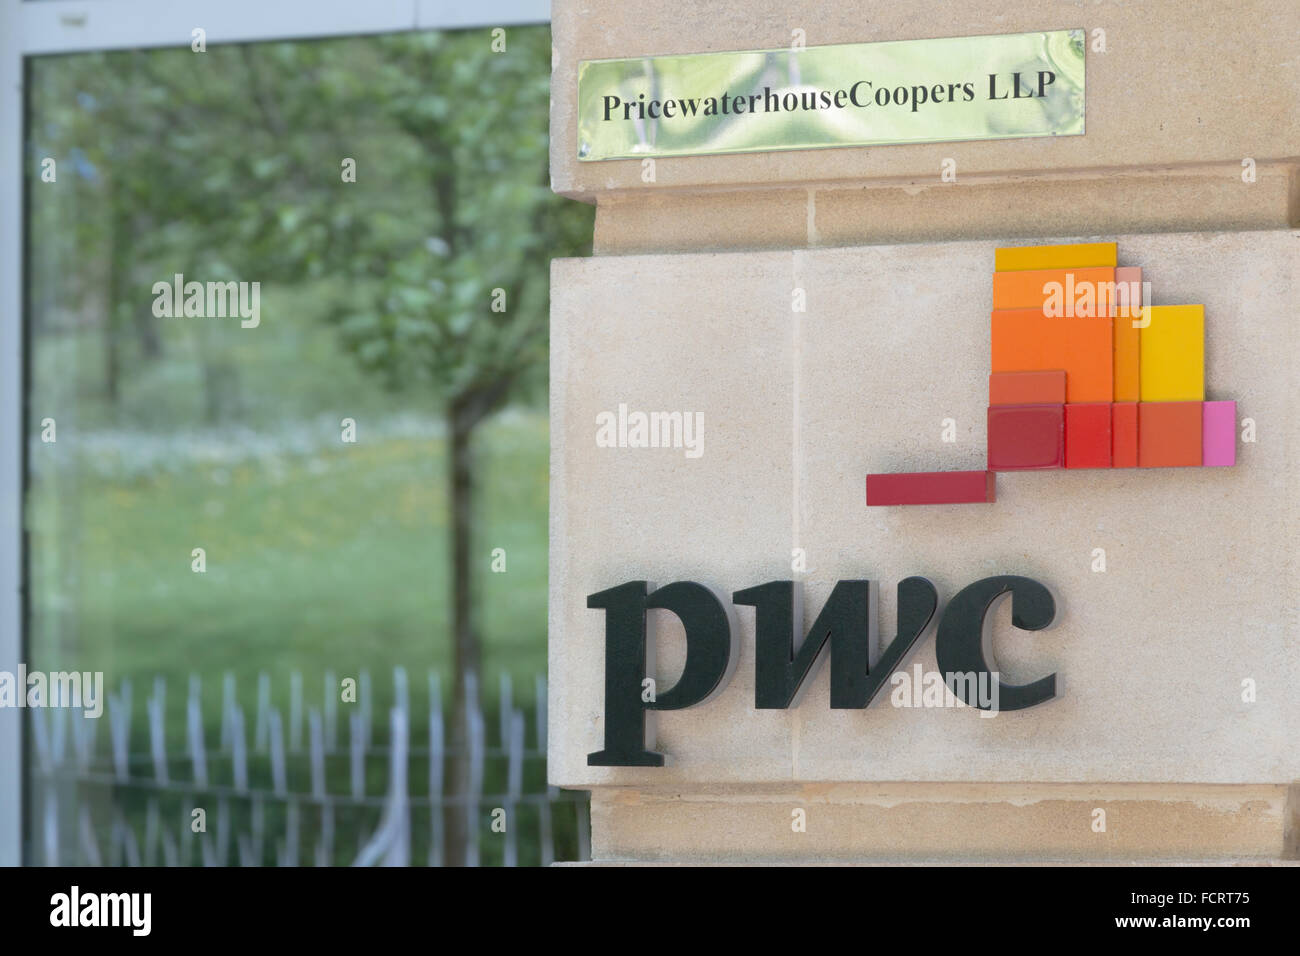 The PWC logo on the side of their building. - Stock Image